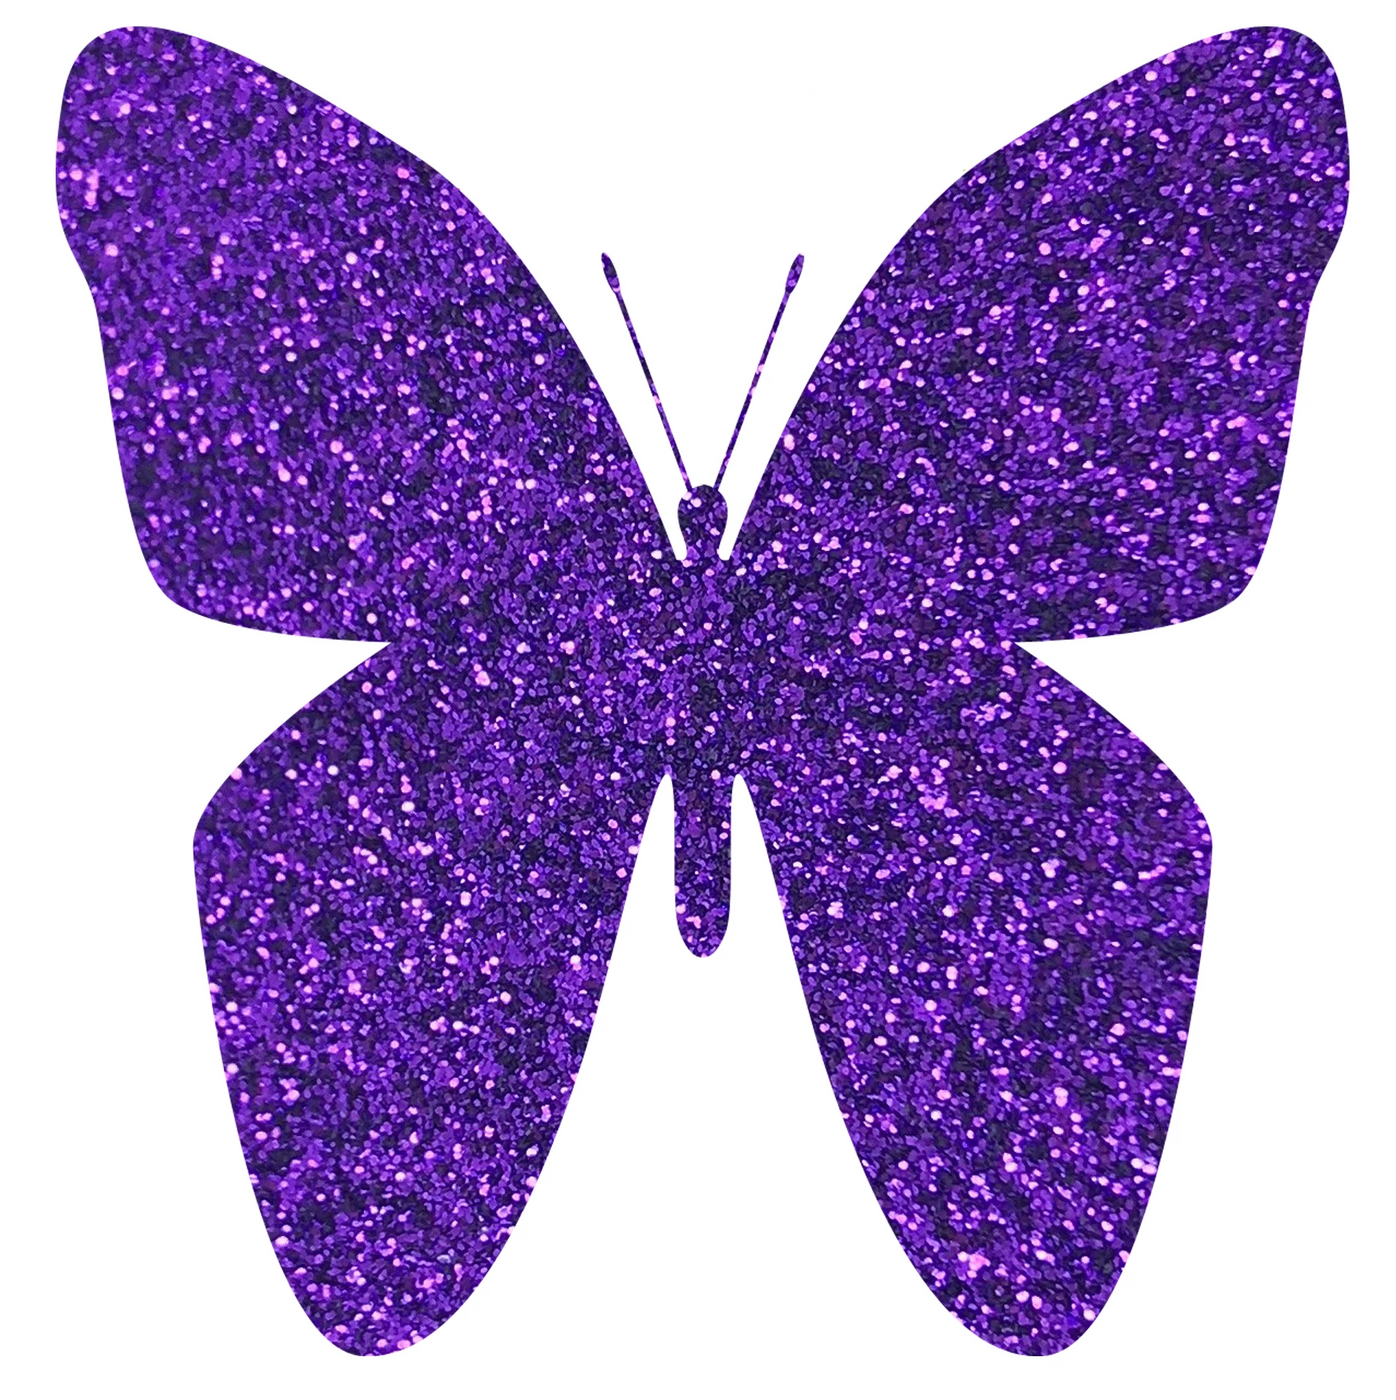 Ultrafine Glitter Majestic Purple (Opaque) G1005